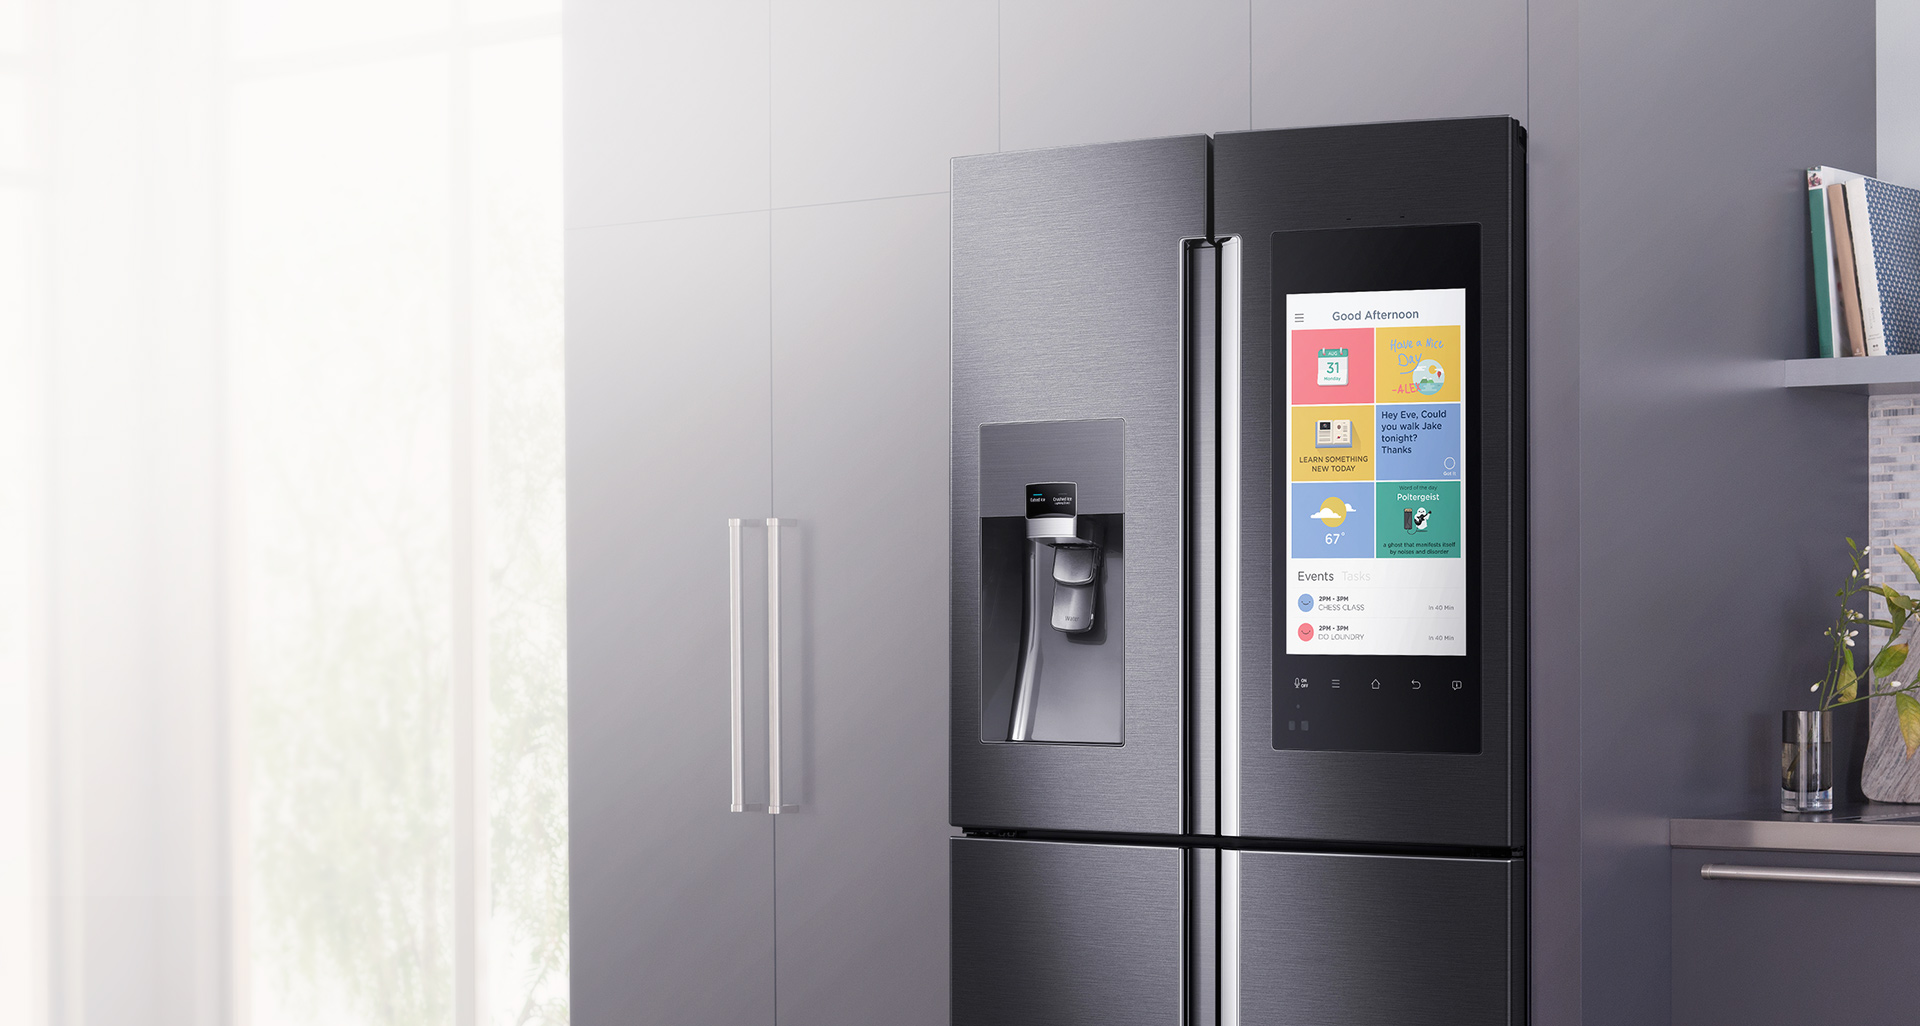 samsung, ces, alexa, ces 2016, smart fridge, connected device, family hub refridgerator